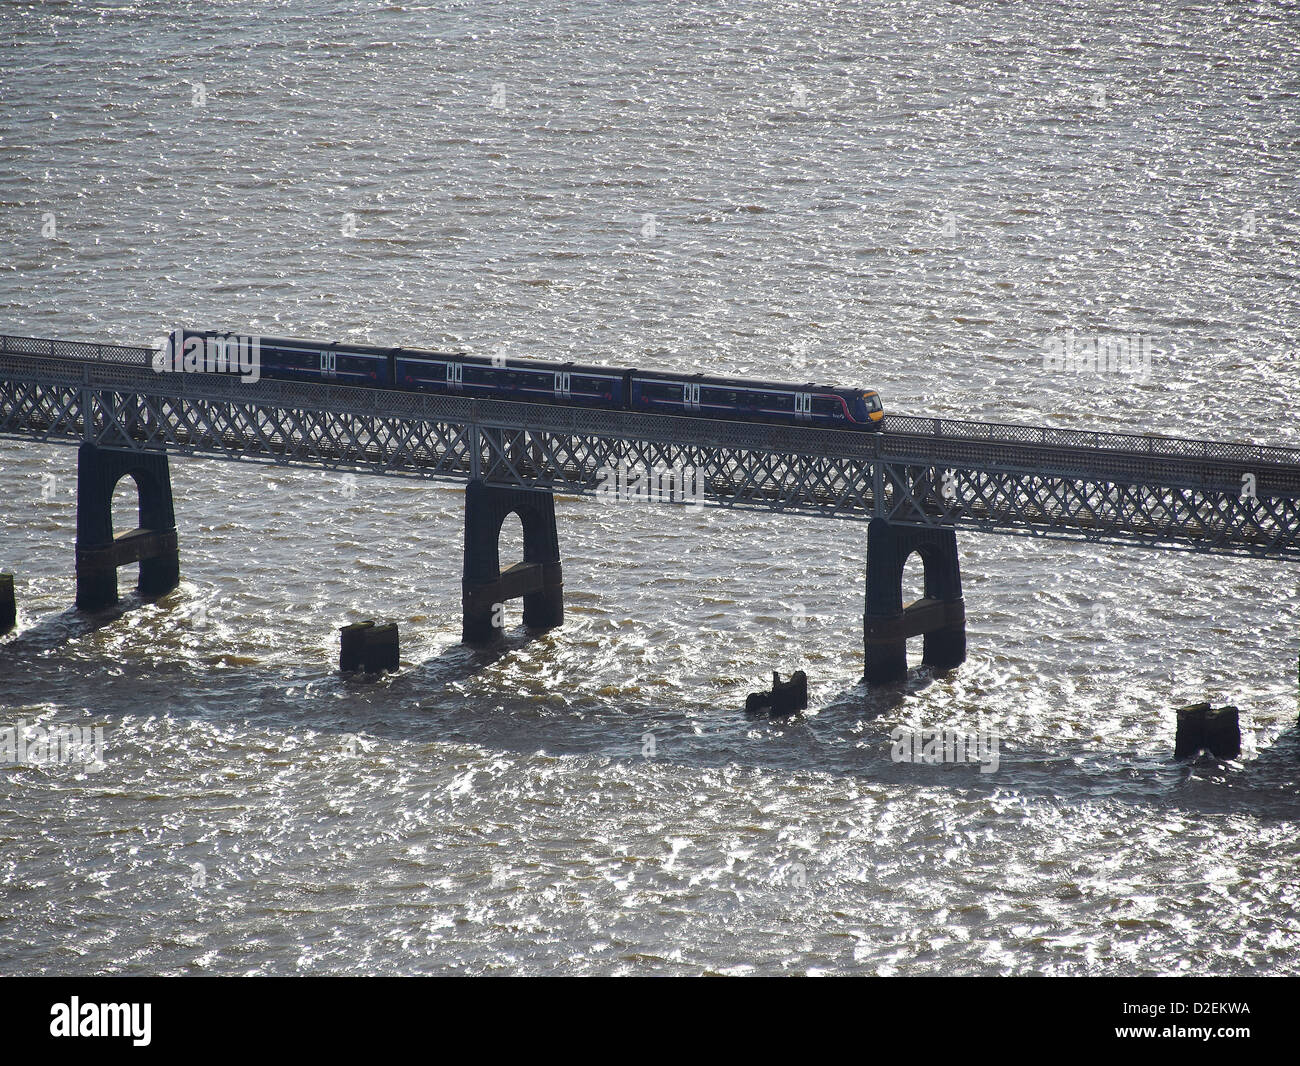 Scotrail Train on the Tay rail bridge, Dundee, Tayside, Scotland, the pillars of the old bridge visible in front - Stock Image